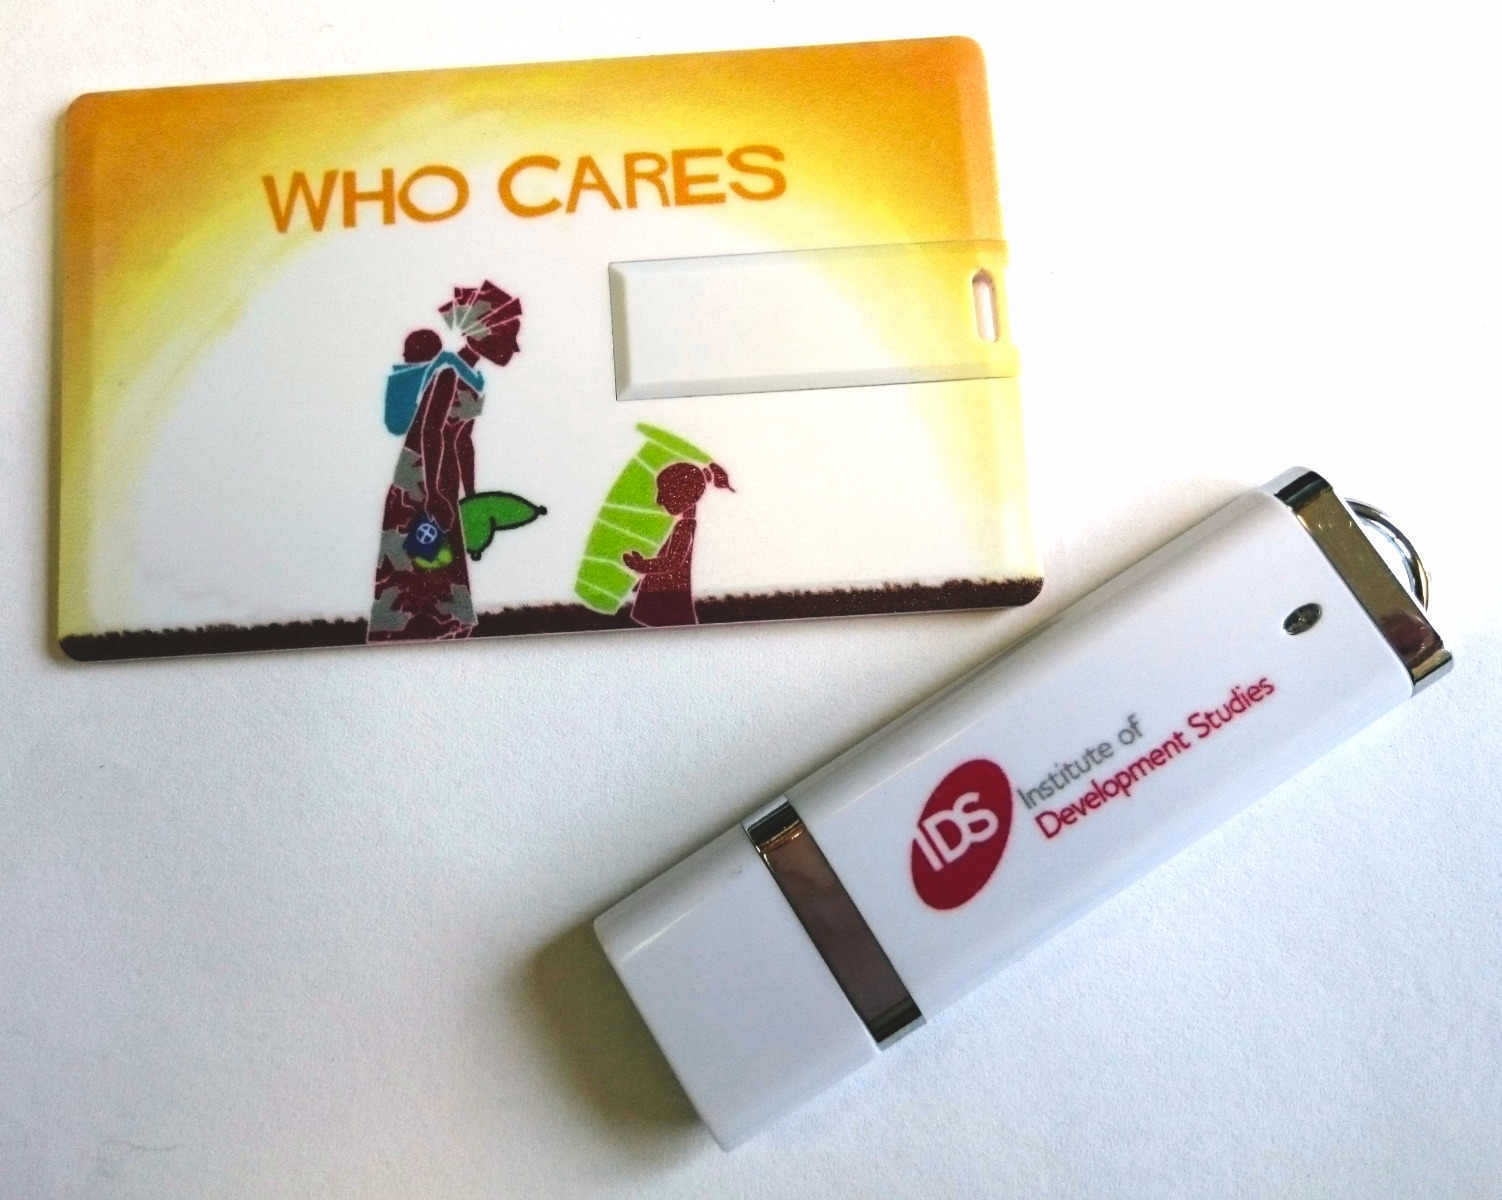 Institute of Development Services branded USB sticks